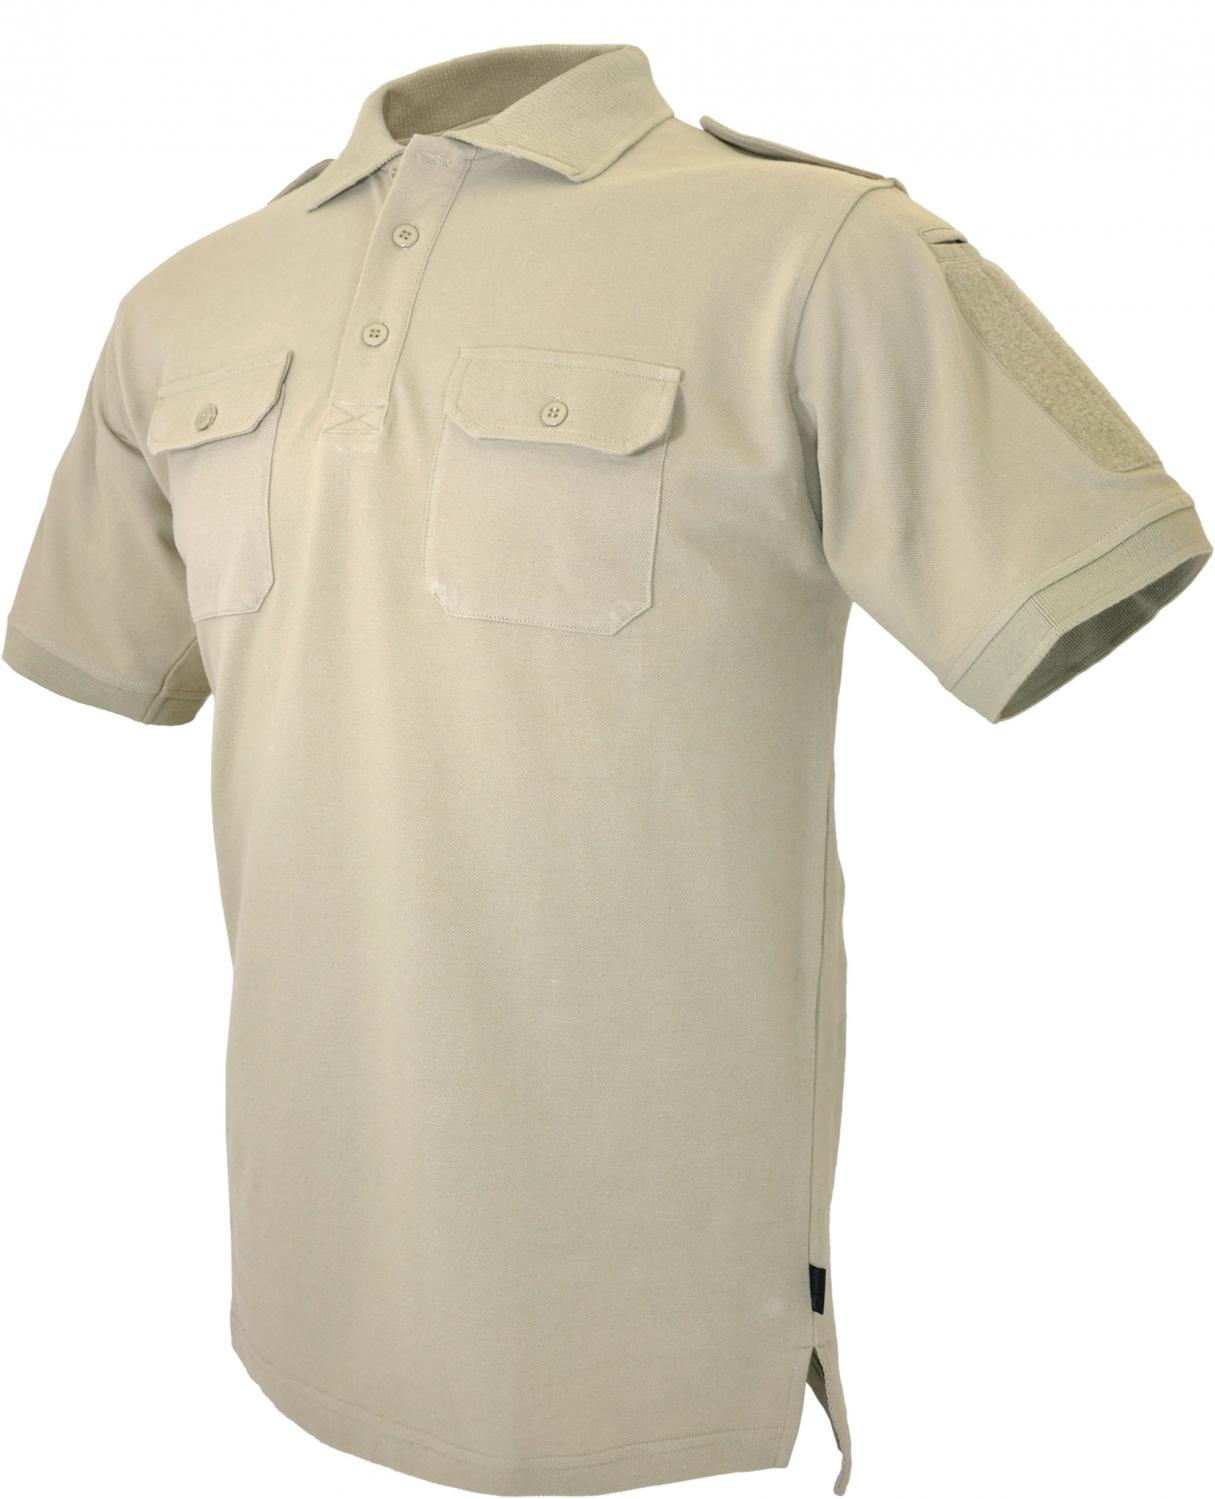 Hazard 4 LEO Uniform Replacement Battle Polo, Tan, 3X Large